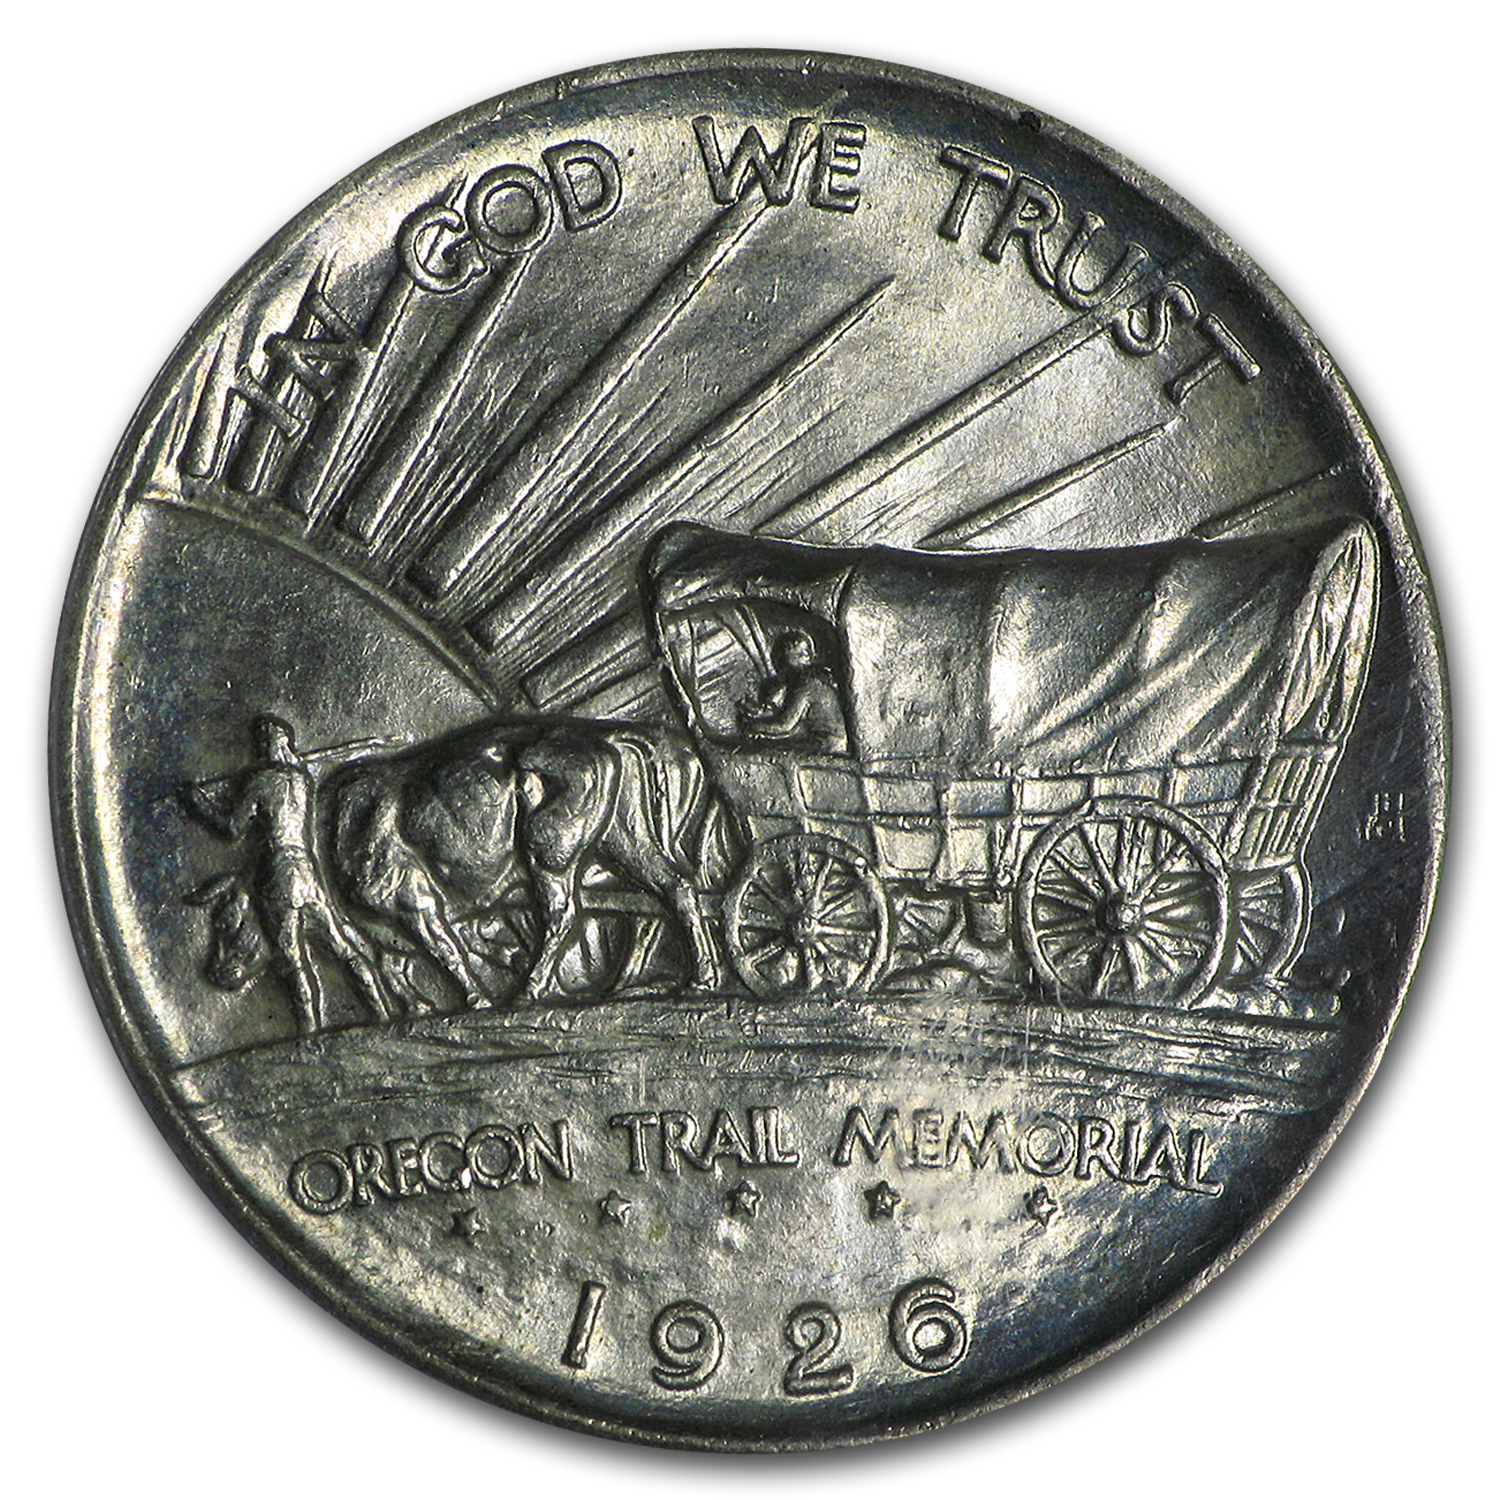 1926 Oregon Trail Memorial MS-64 PCGS